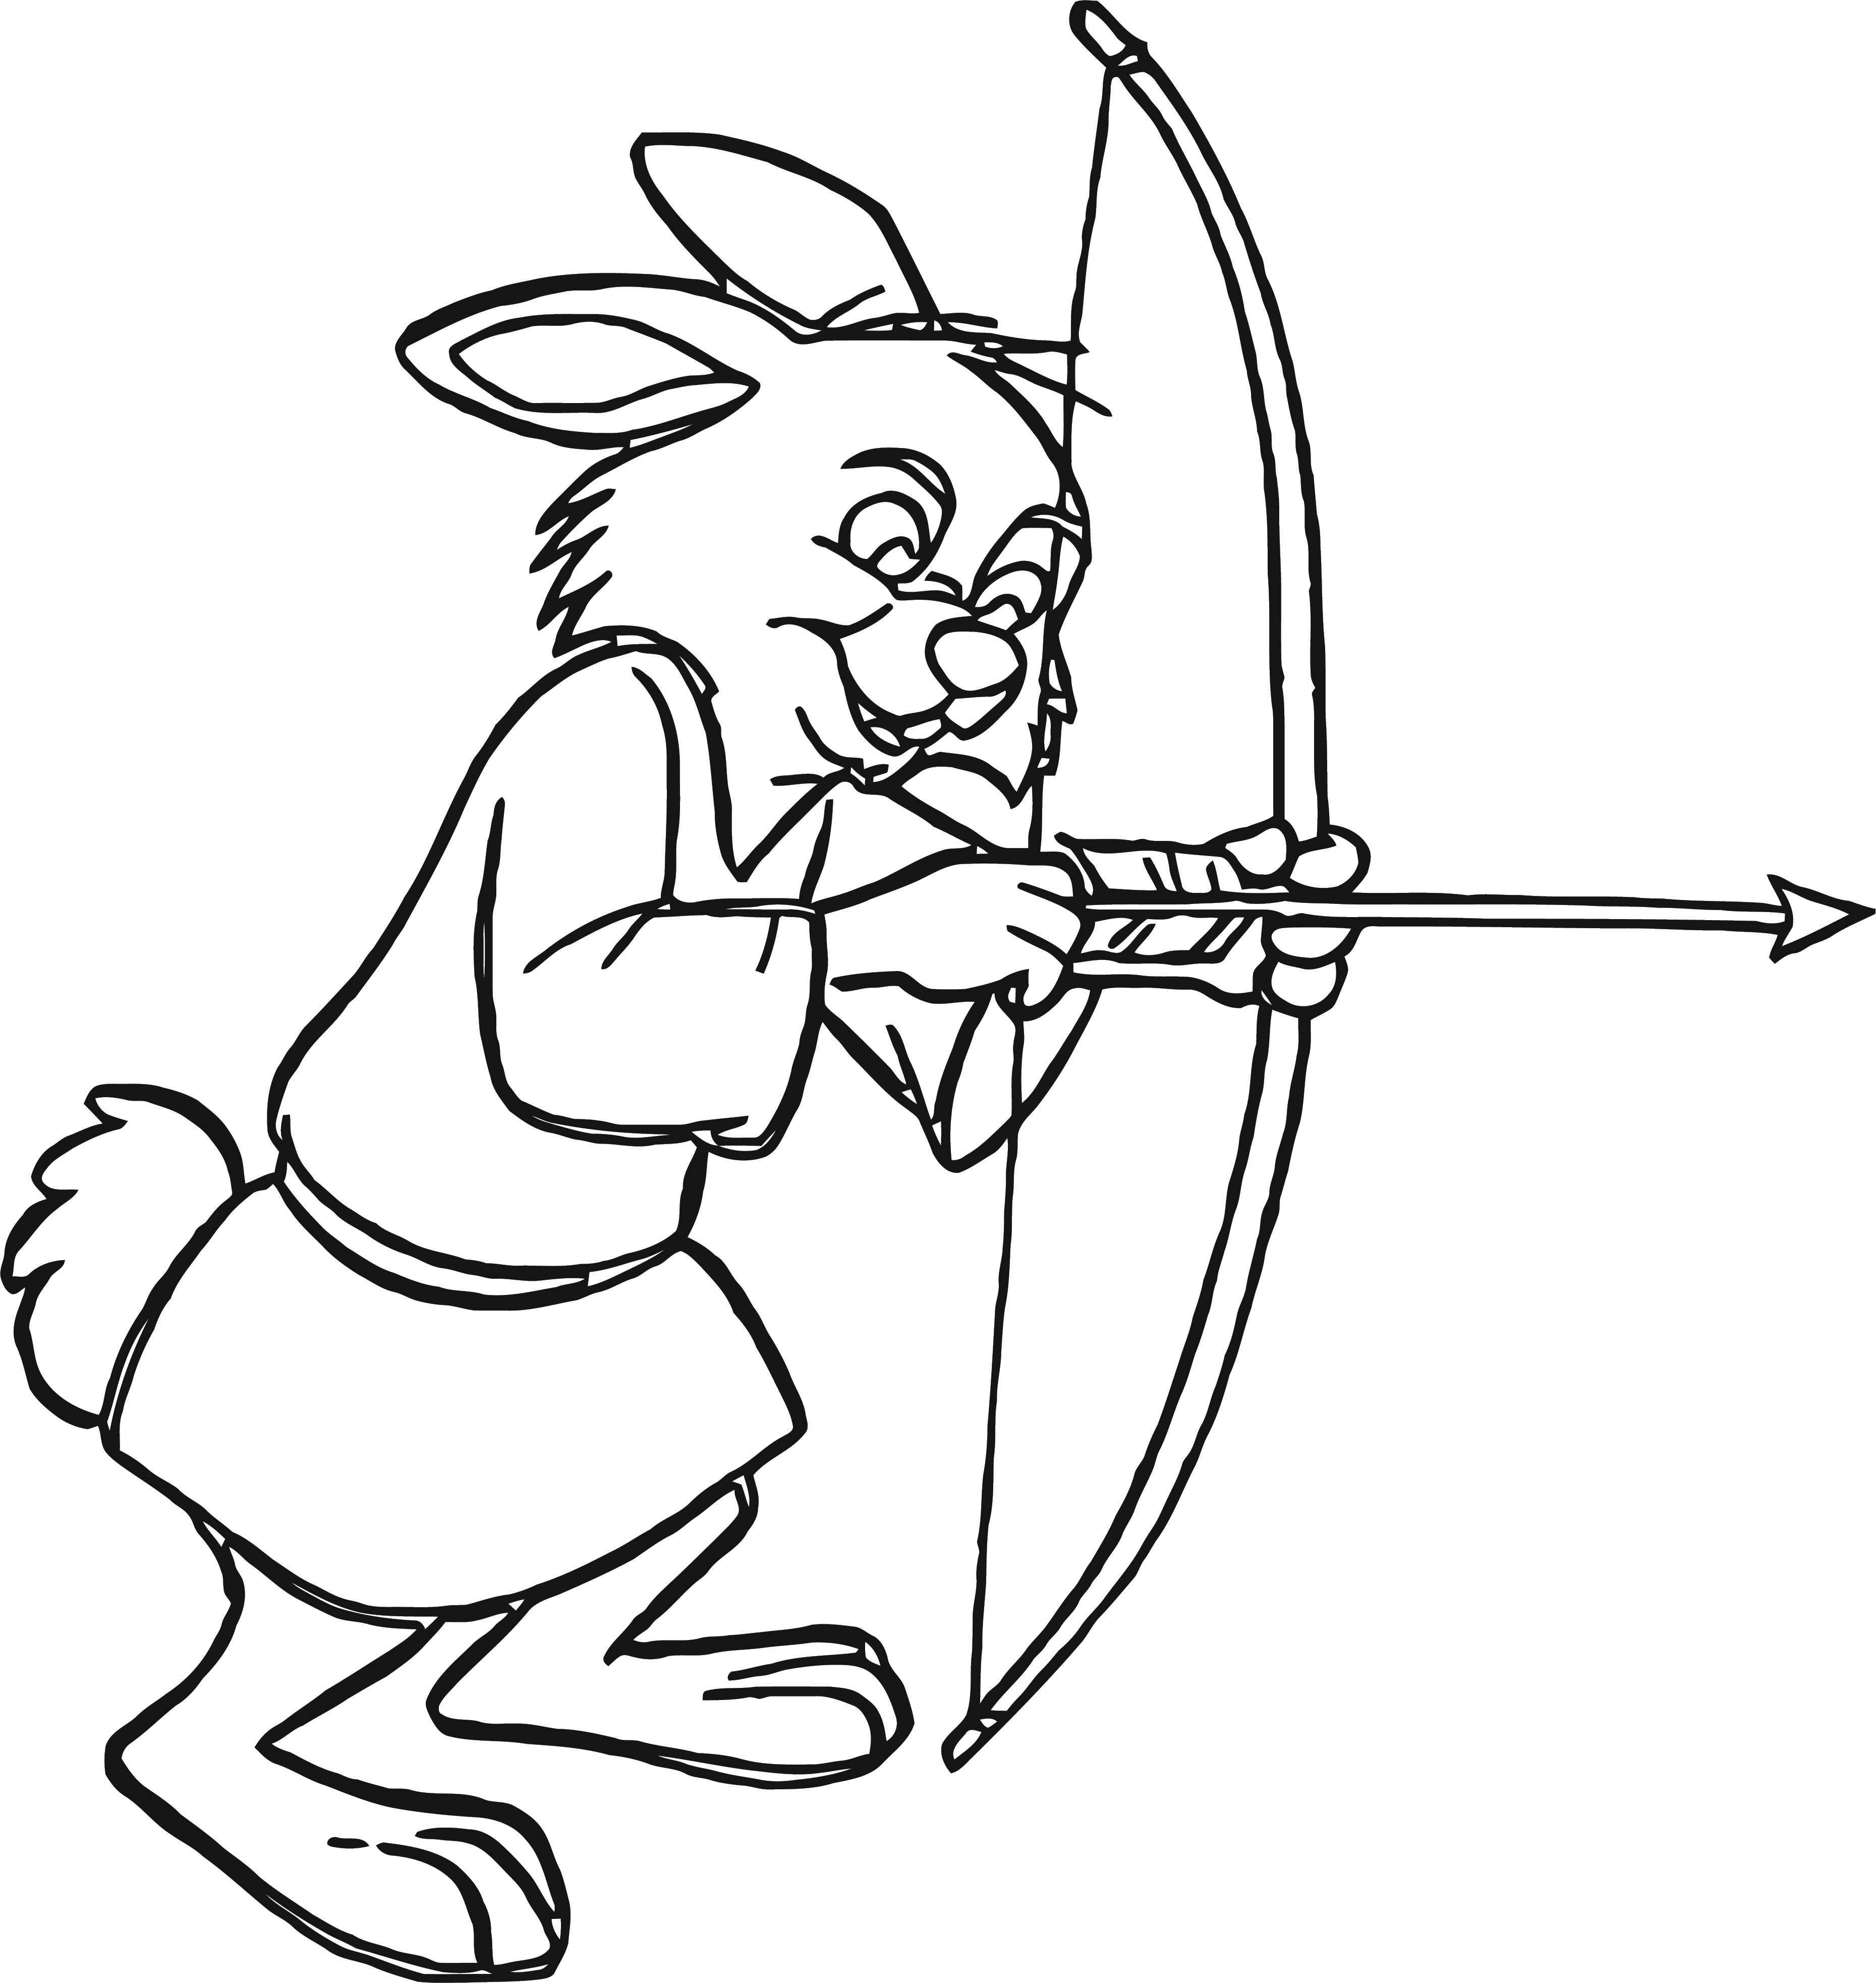 Skippy 5 Coloring Page